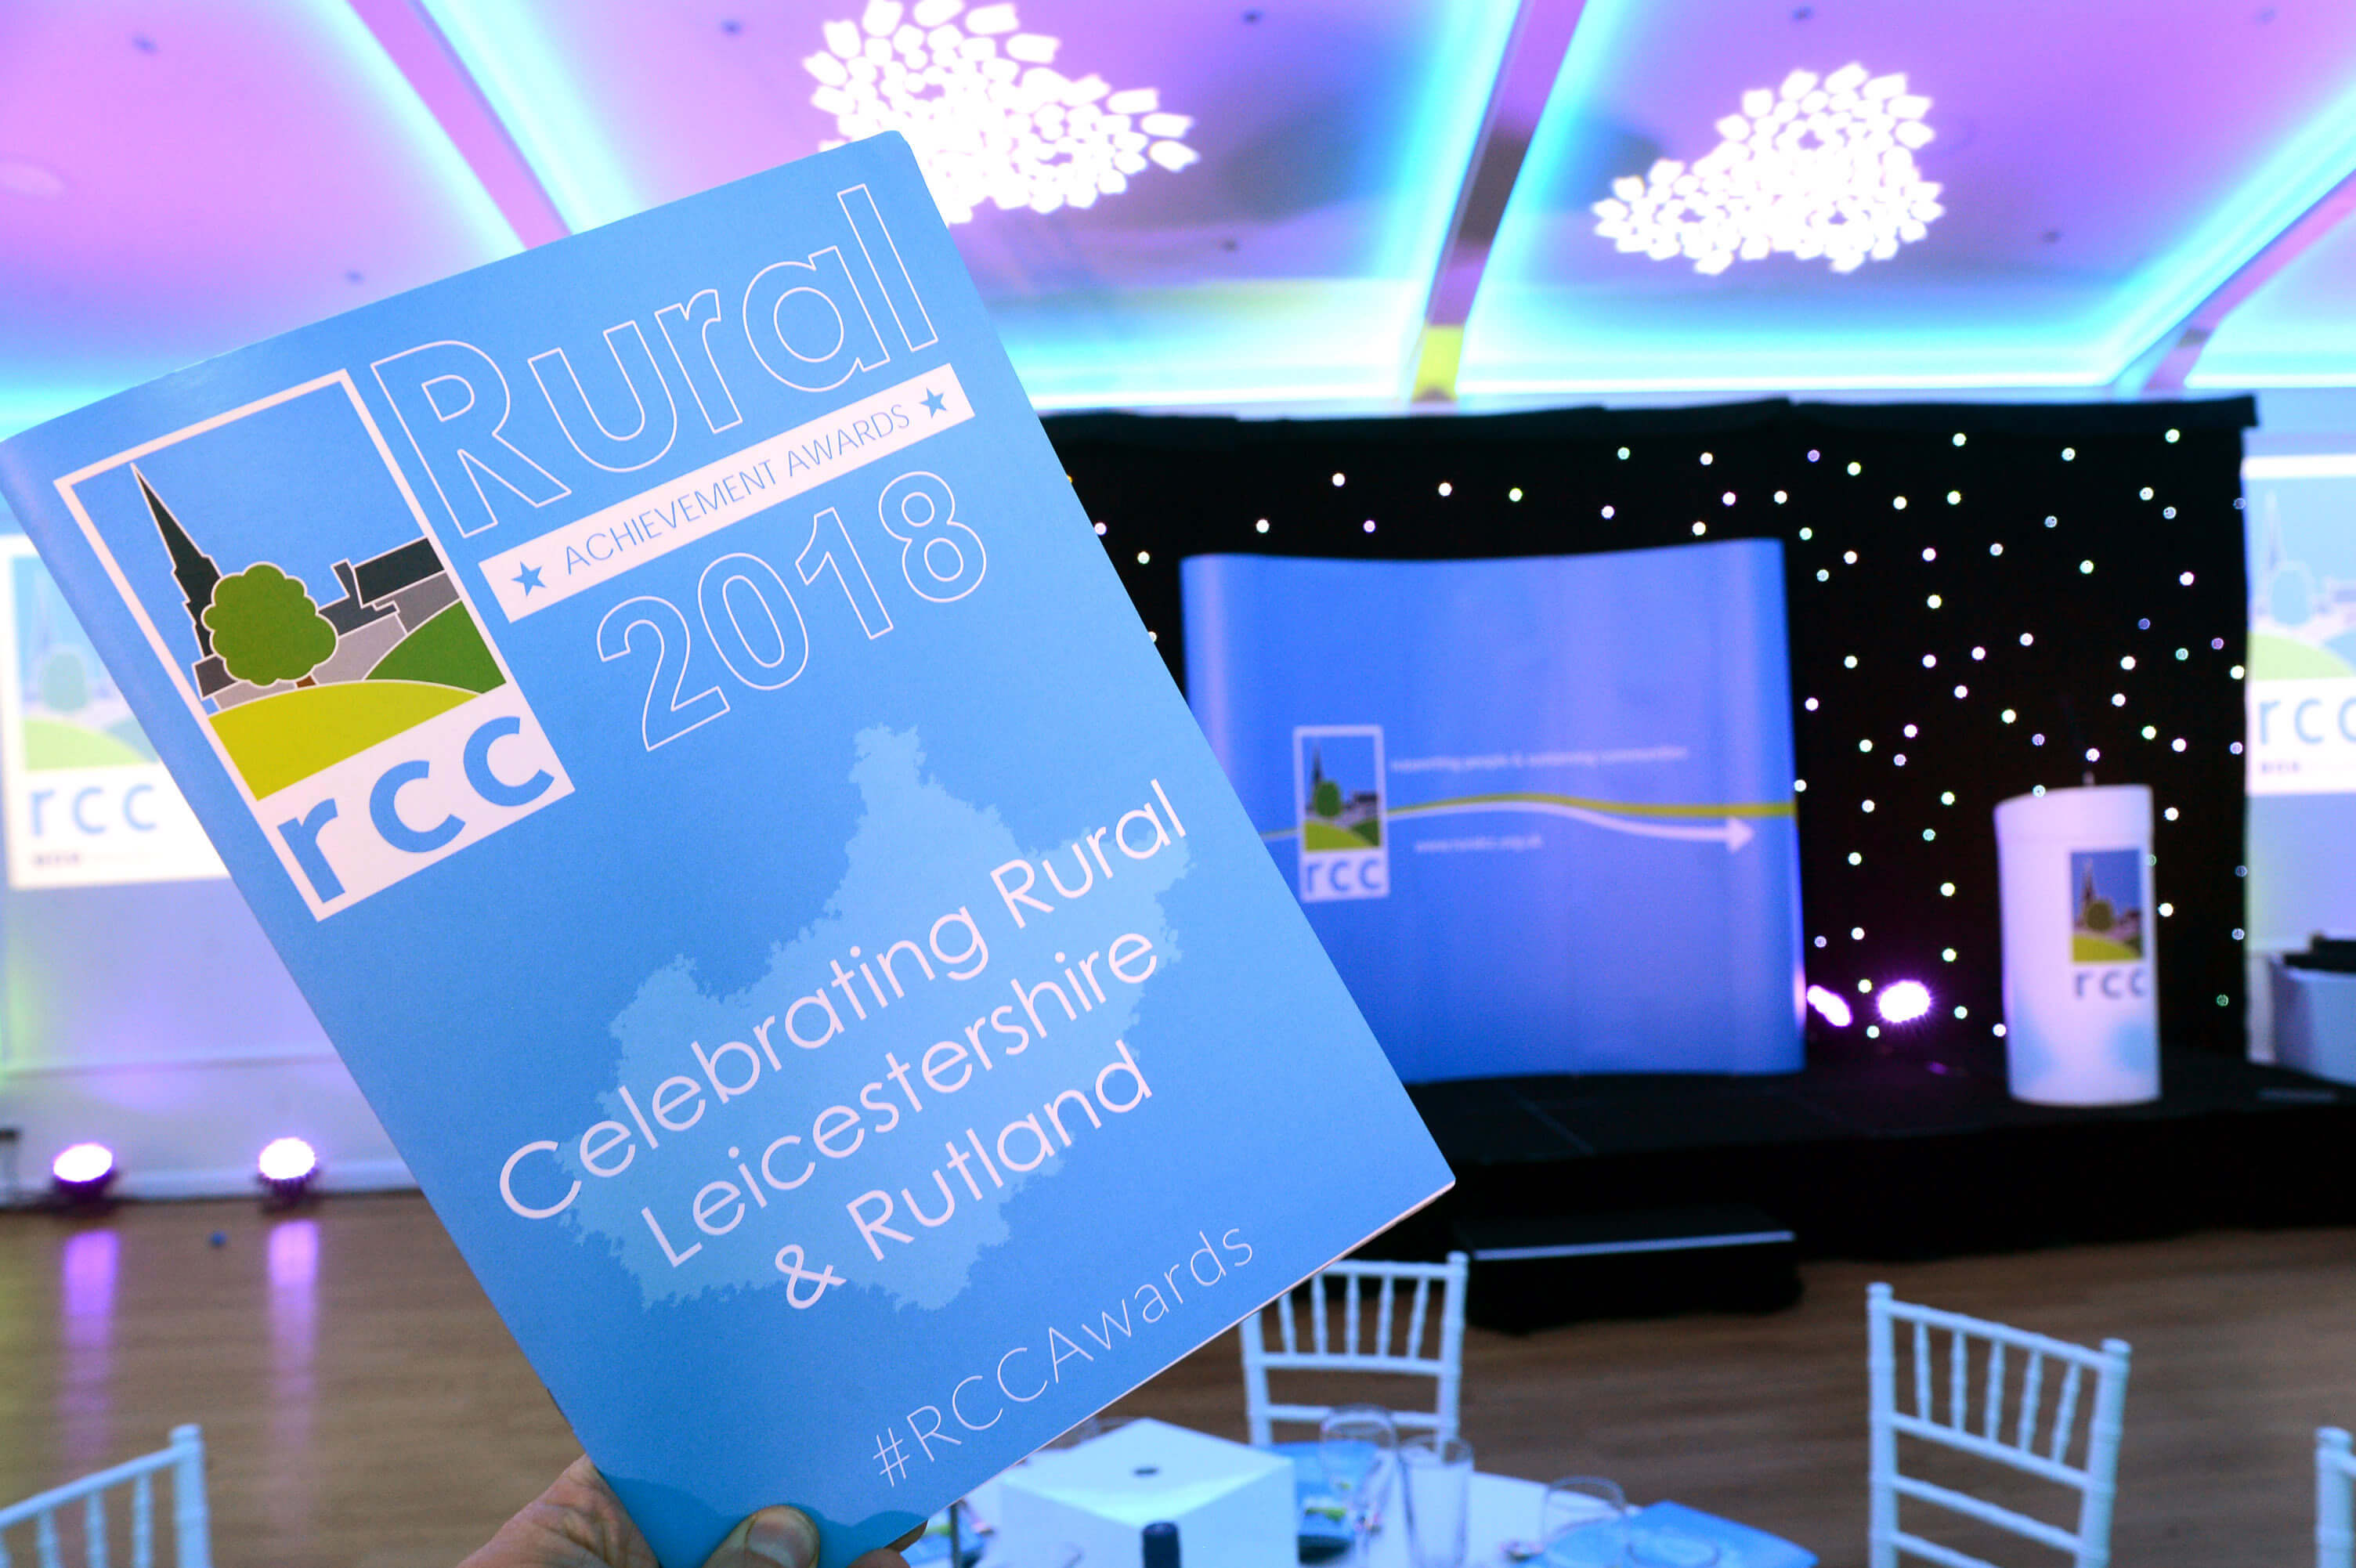 2018 RCC Rural Awards 4089